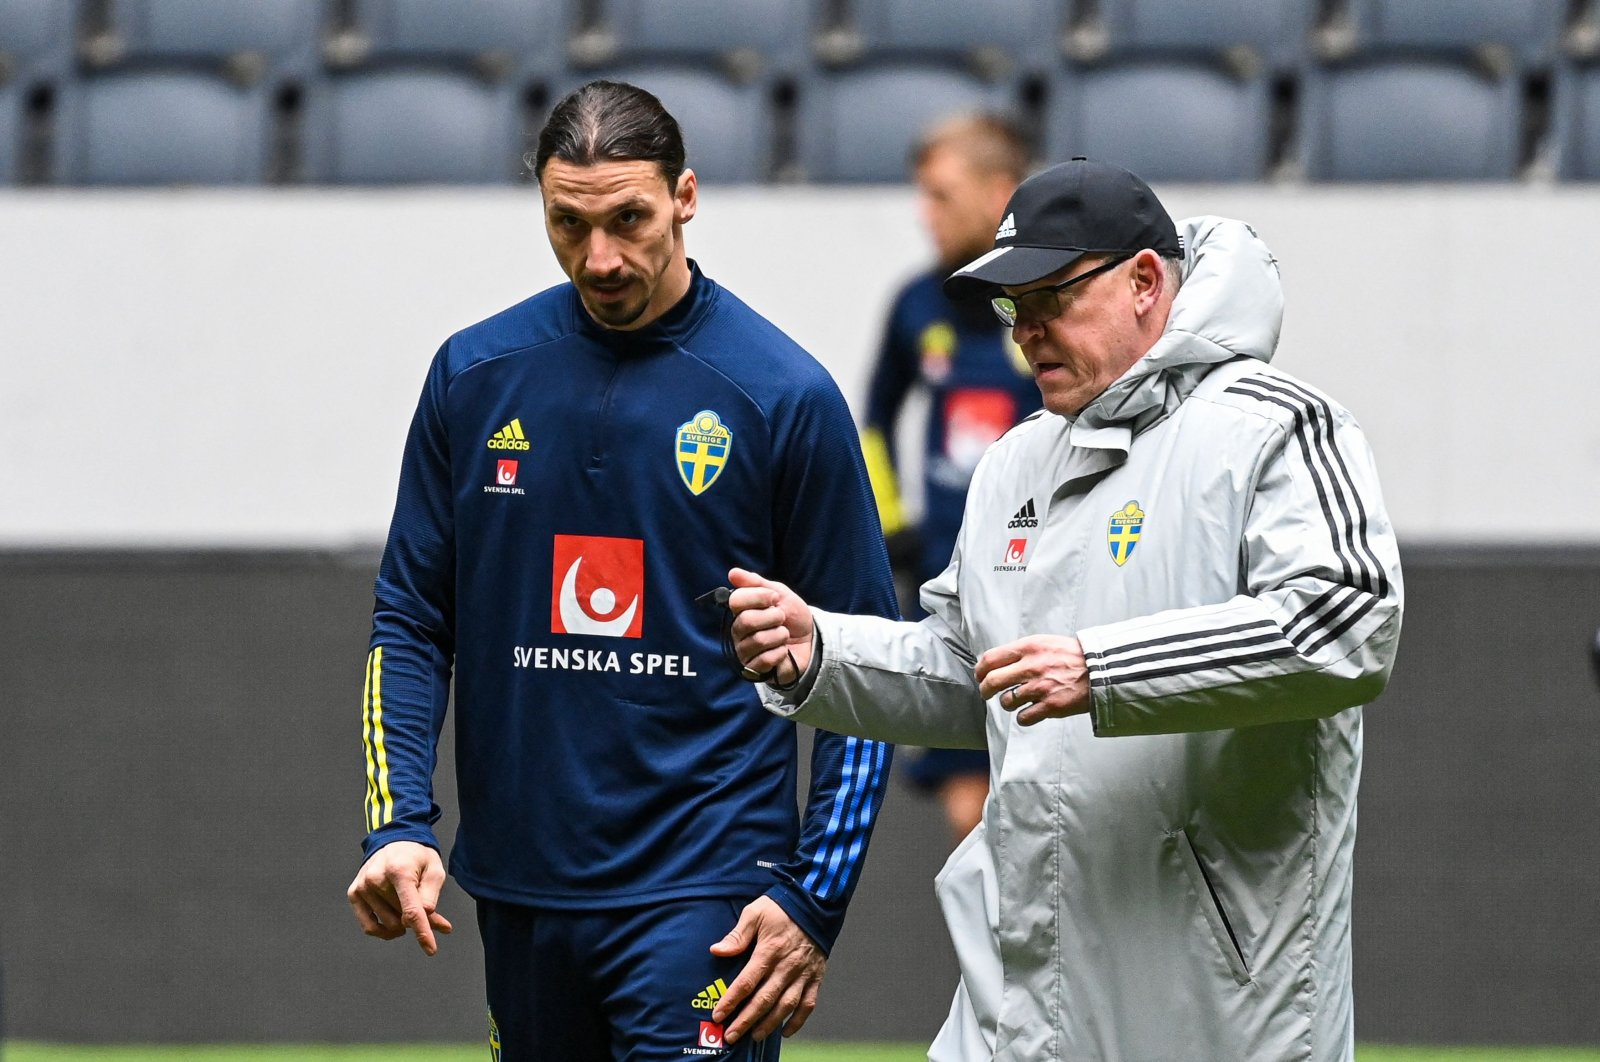 Sweden forward Zlatan Ibrahimovic (L) speaks with coach Janne Andersson during a training session of Sweden's national football team in Solna, Sweden, March 30, 2021. (AFP Photo)